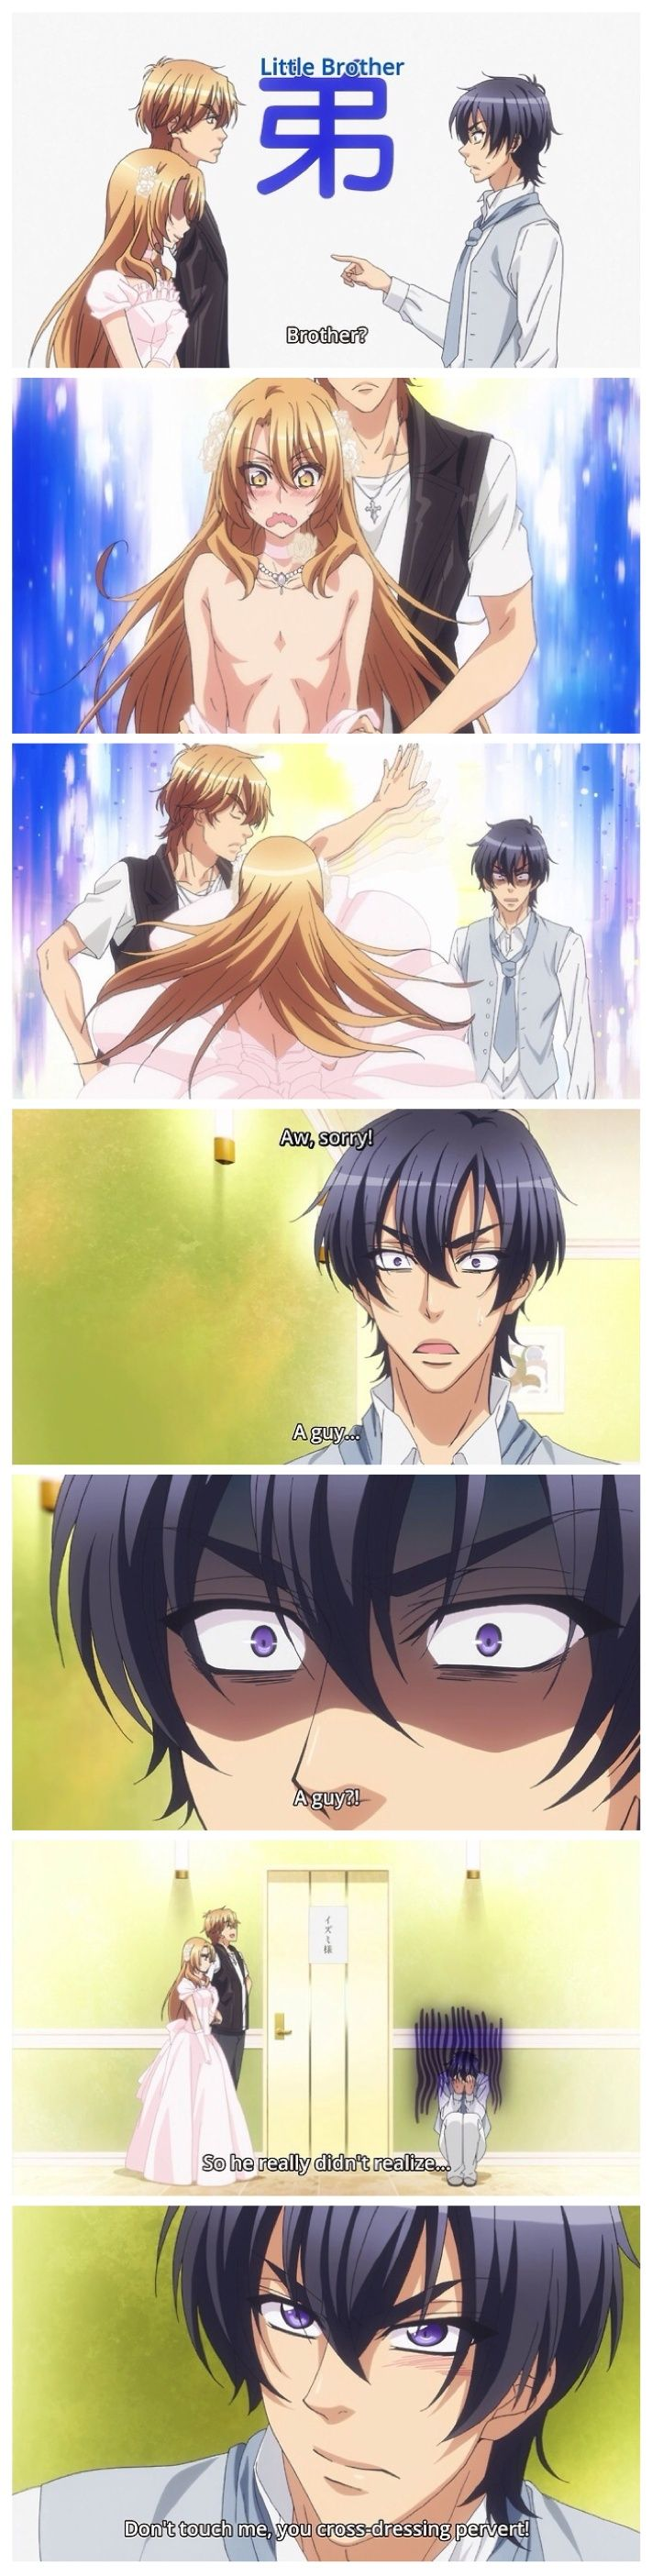 Love Stage. I saw this somewhere else a few days ago, found the anime and now i'm waiting for the new episode on Wednesday! (along with free! eternal summer)